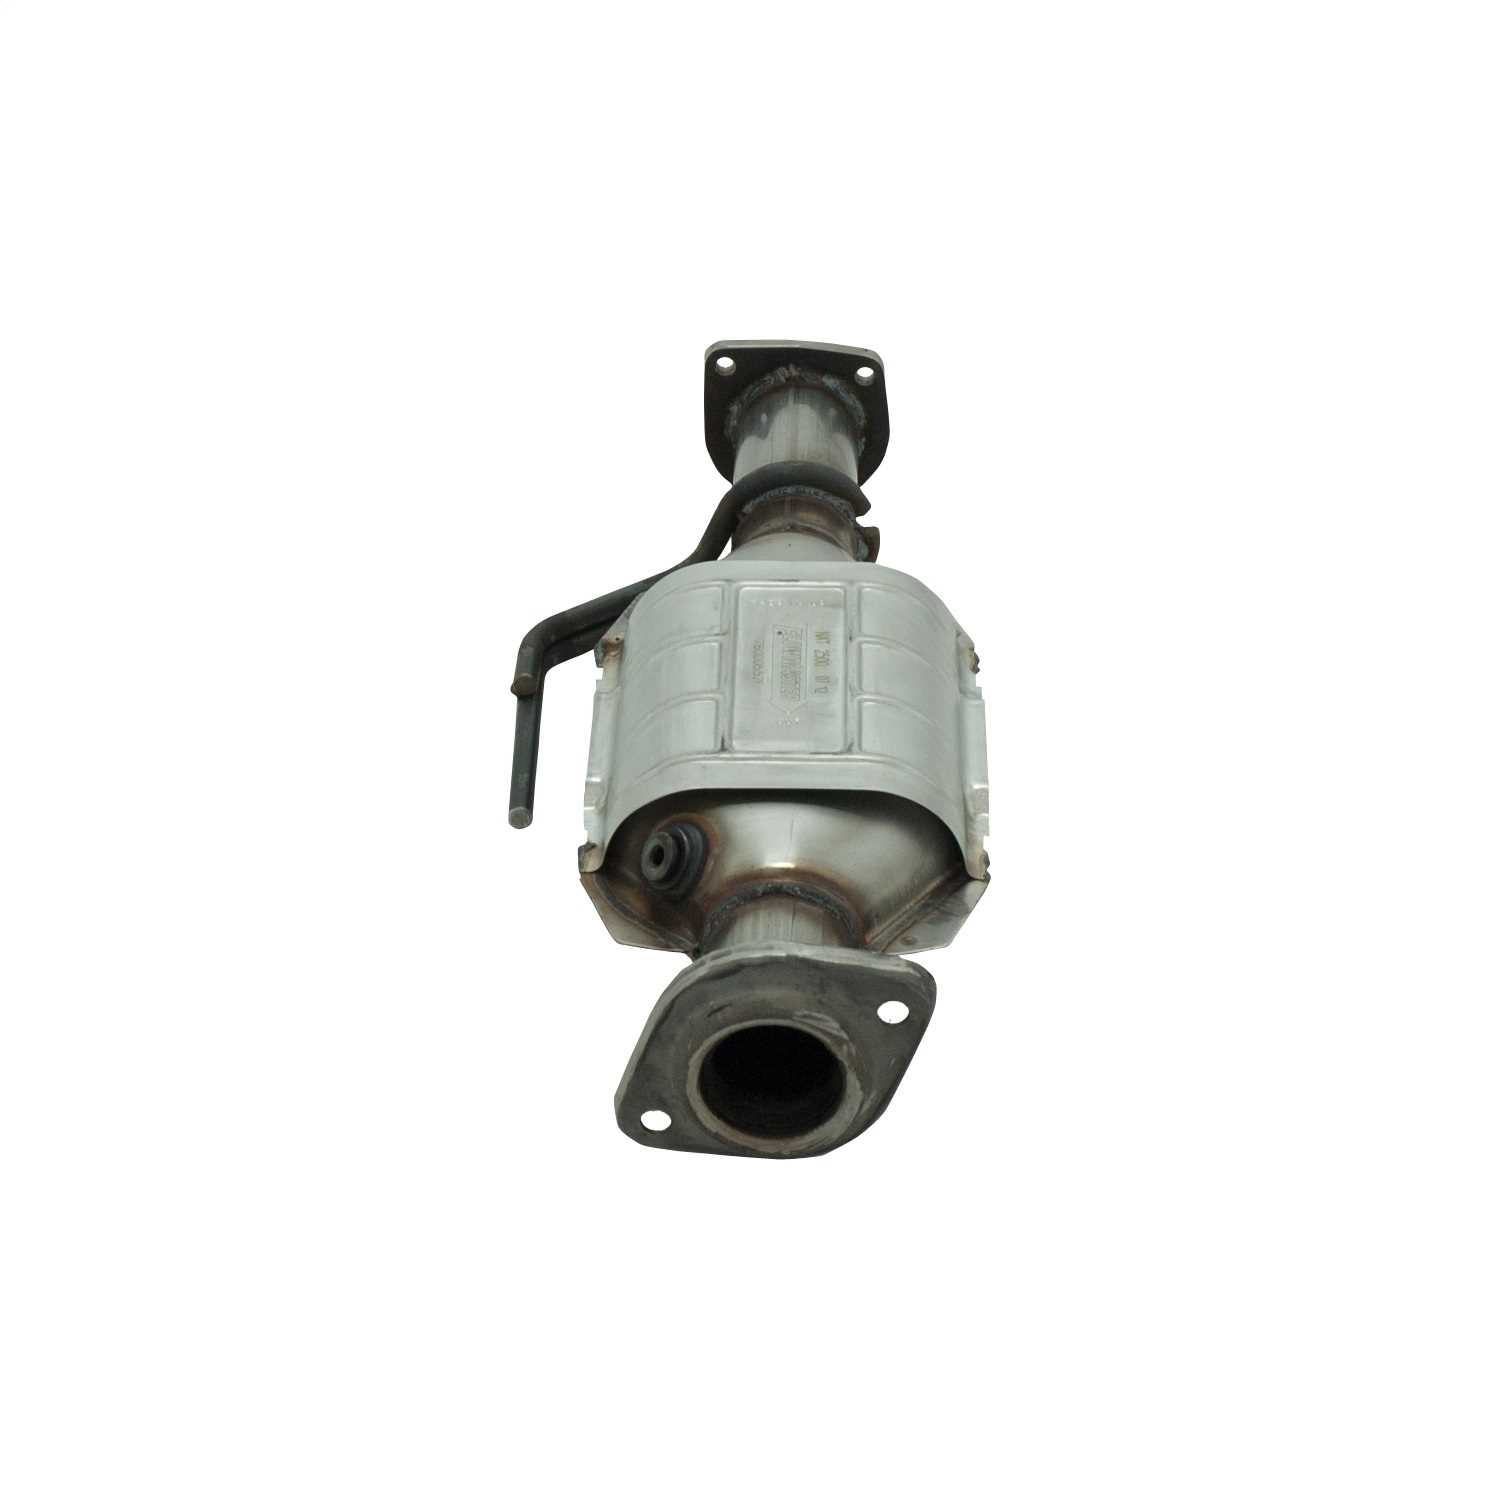 2040006 Flowmaster 49 State Catalytic Converters Direct Fit Catalytic Converter